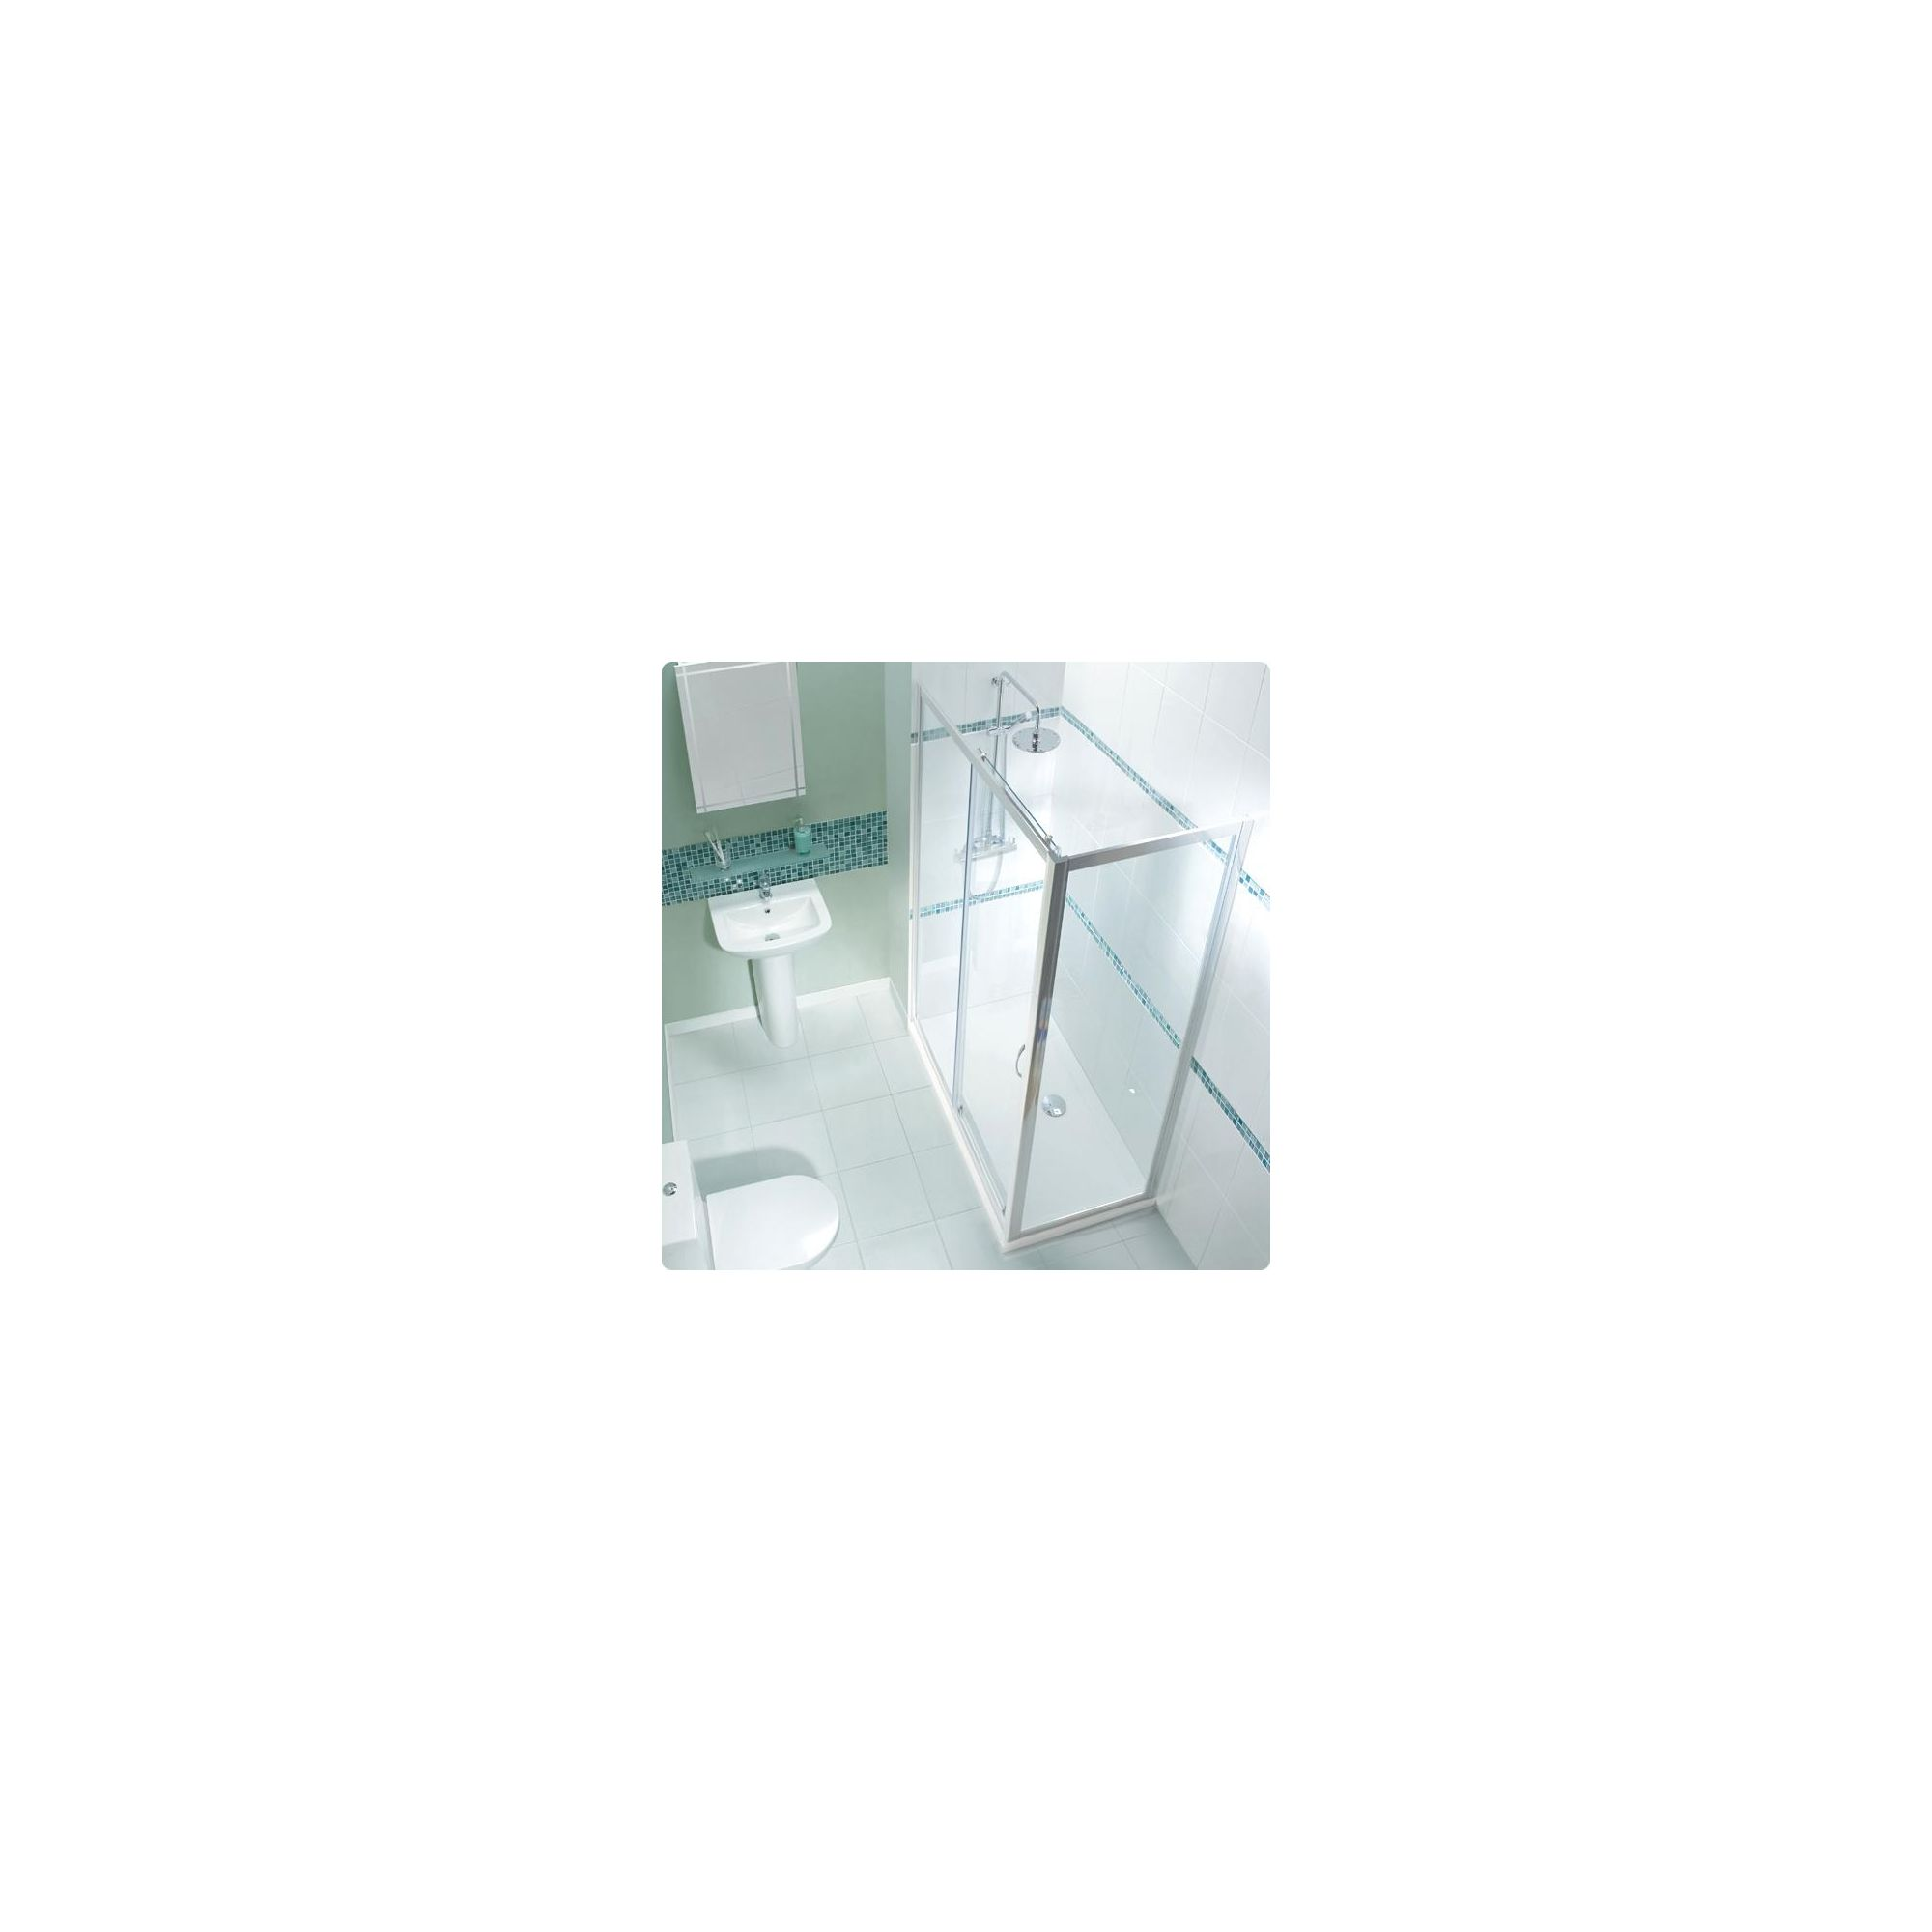 Balterley Framed Sliding Shower Enclosure, 1700mm x 700mm, Low Profile Tray, 6mm Glass at Tesco Direct